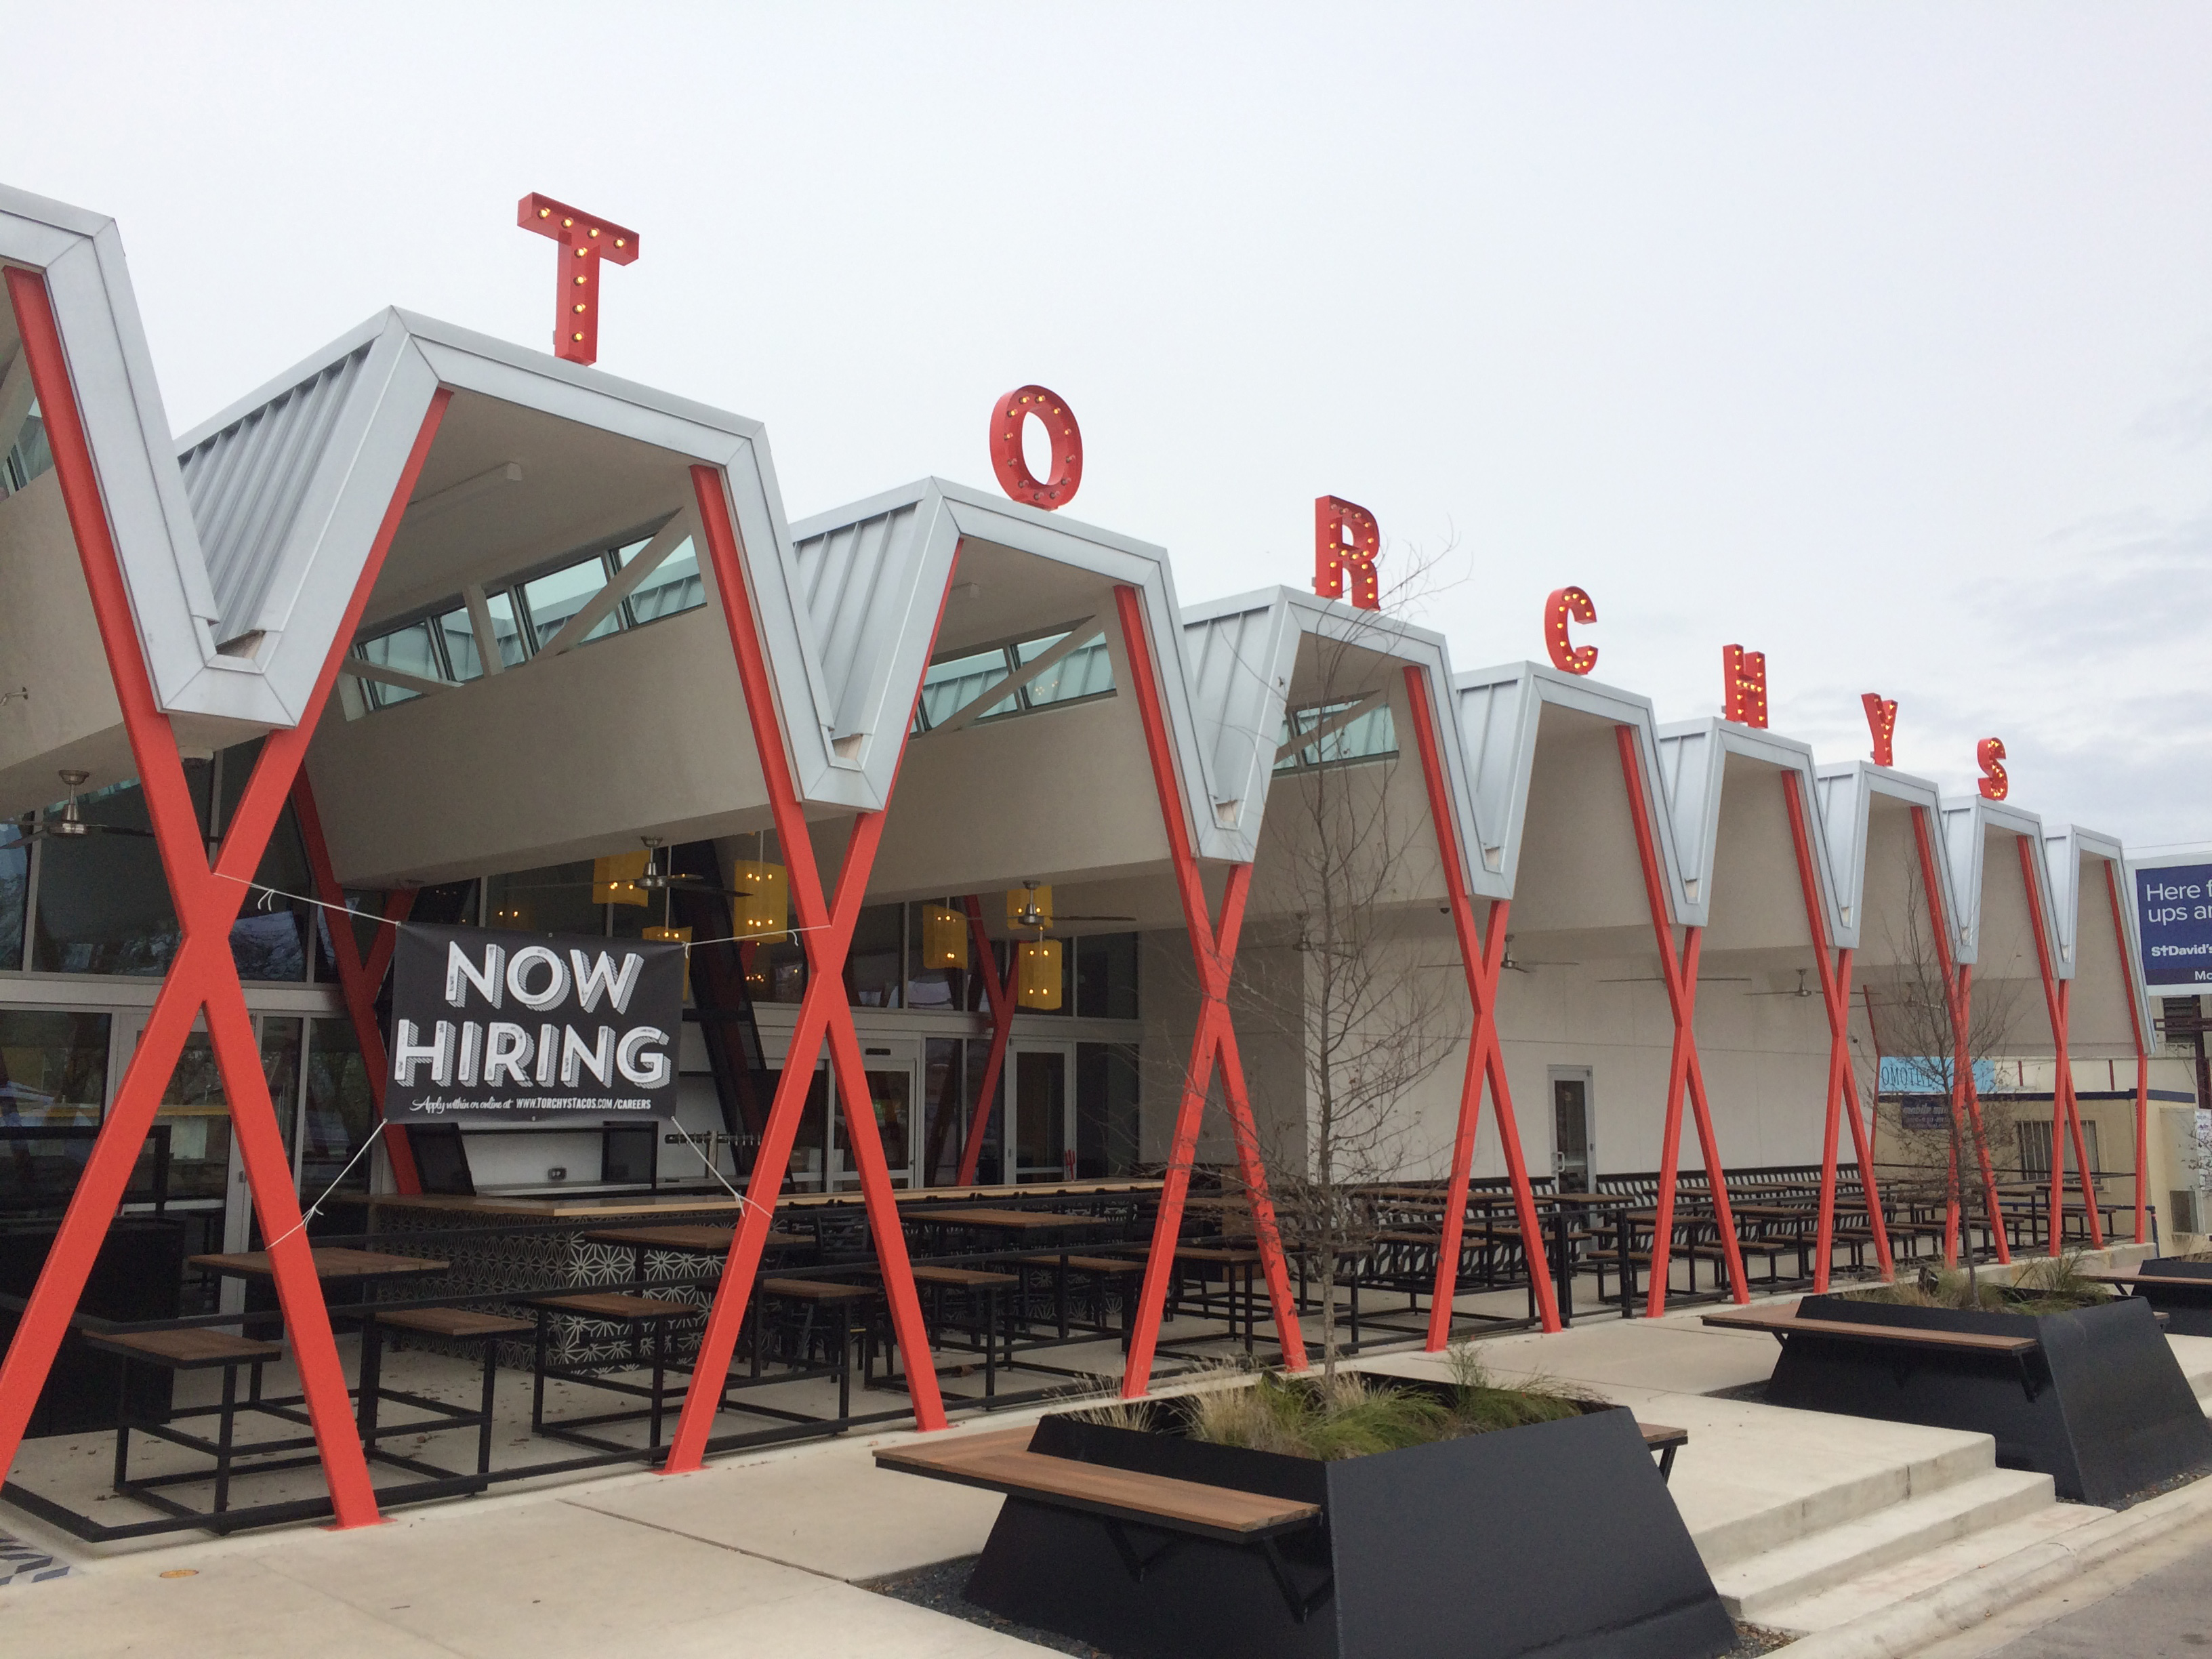 Torchy's Tacos on South Congress